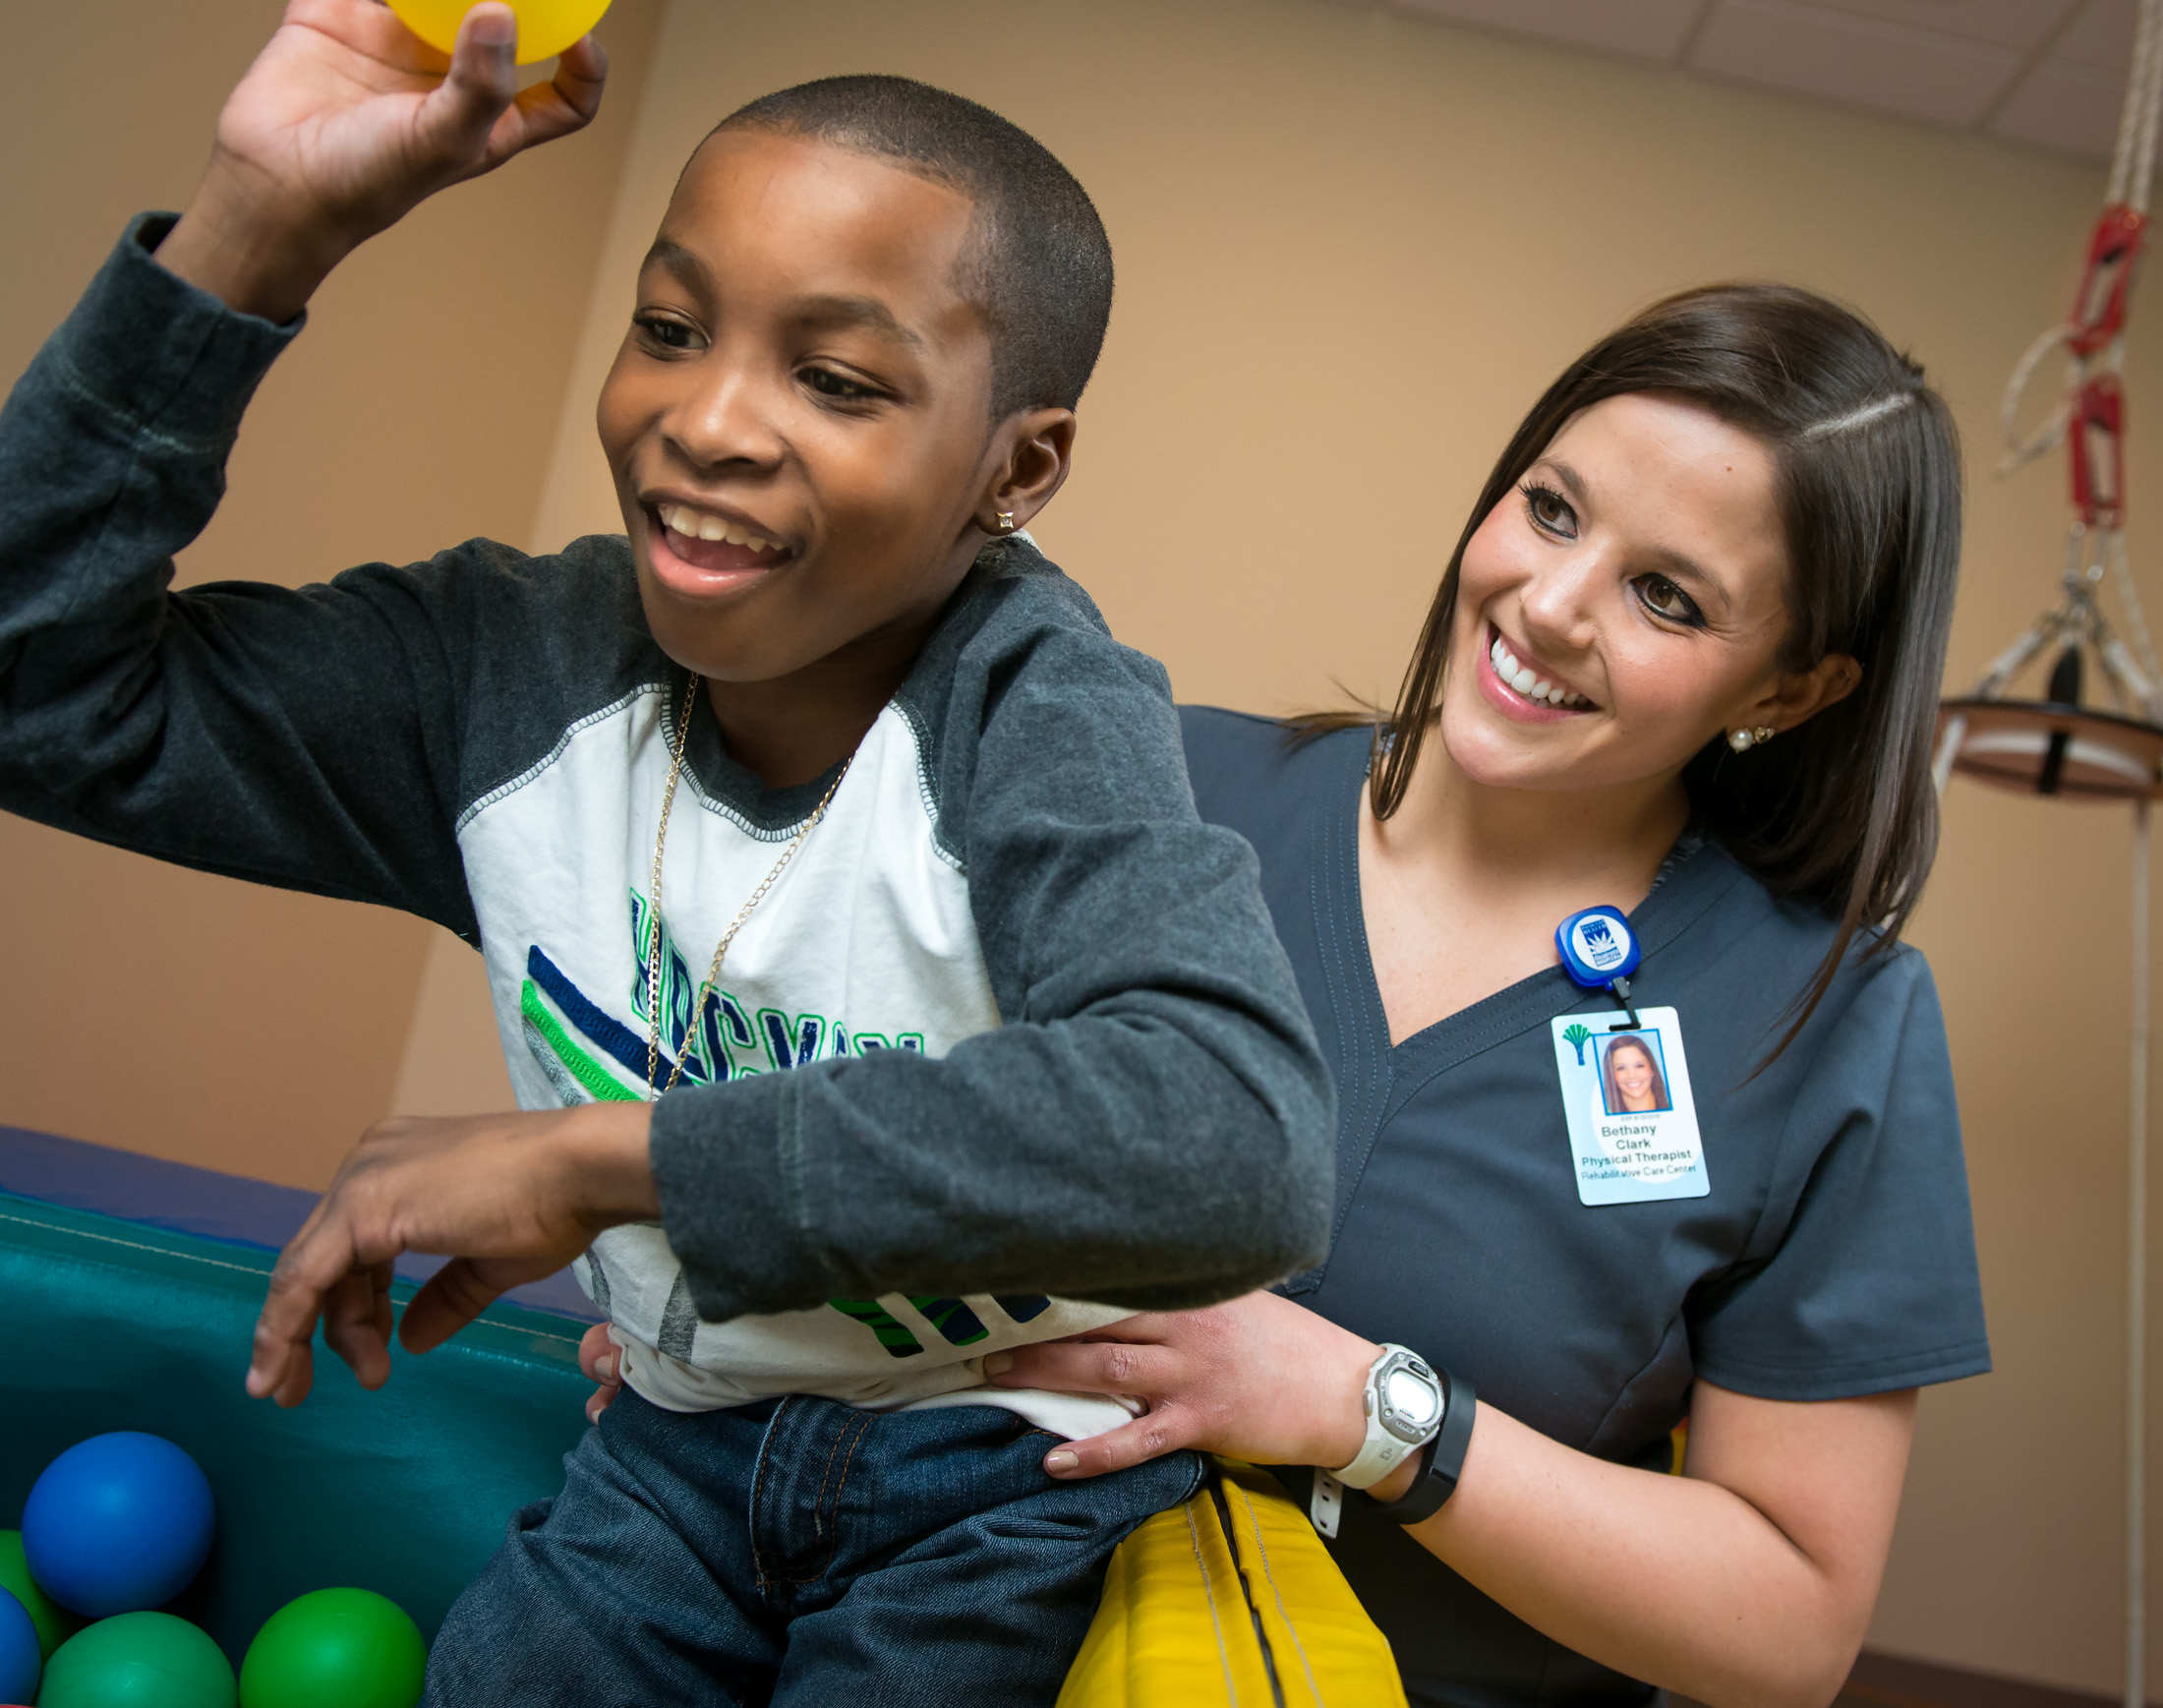 How to help the child in the hospital: counseling